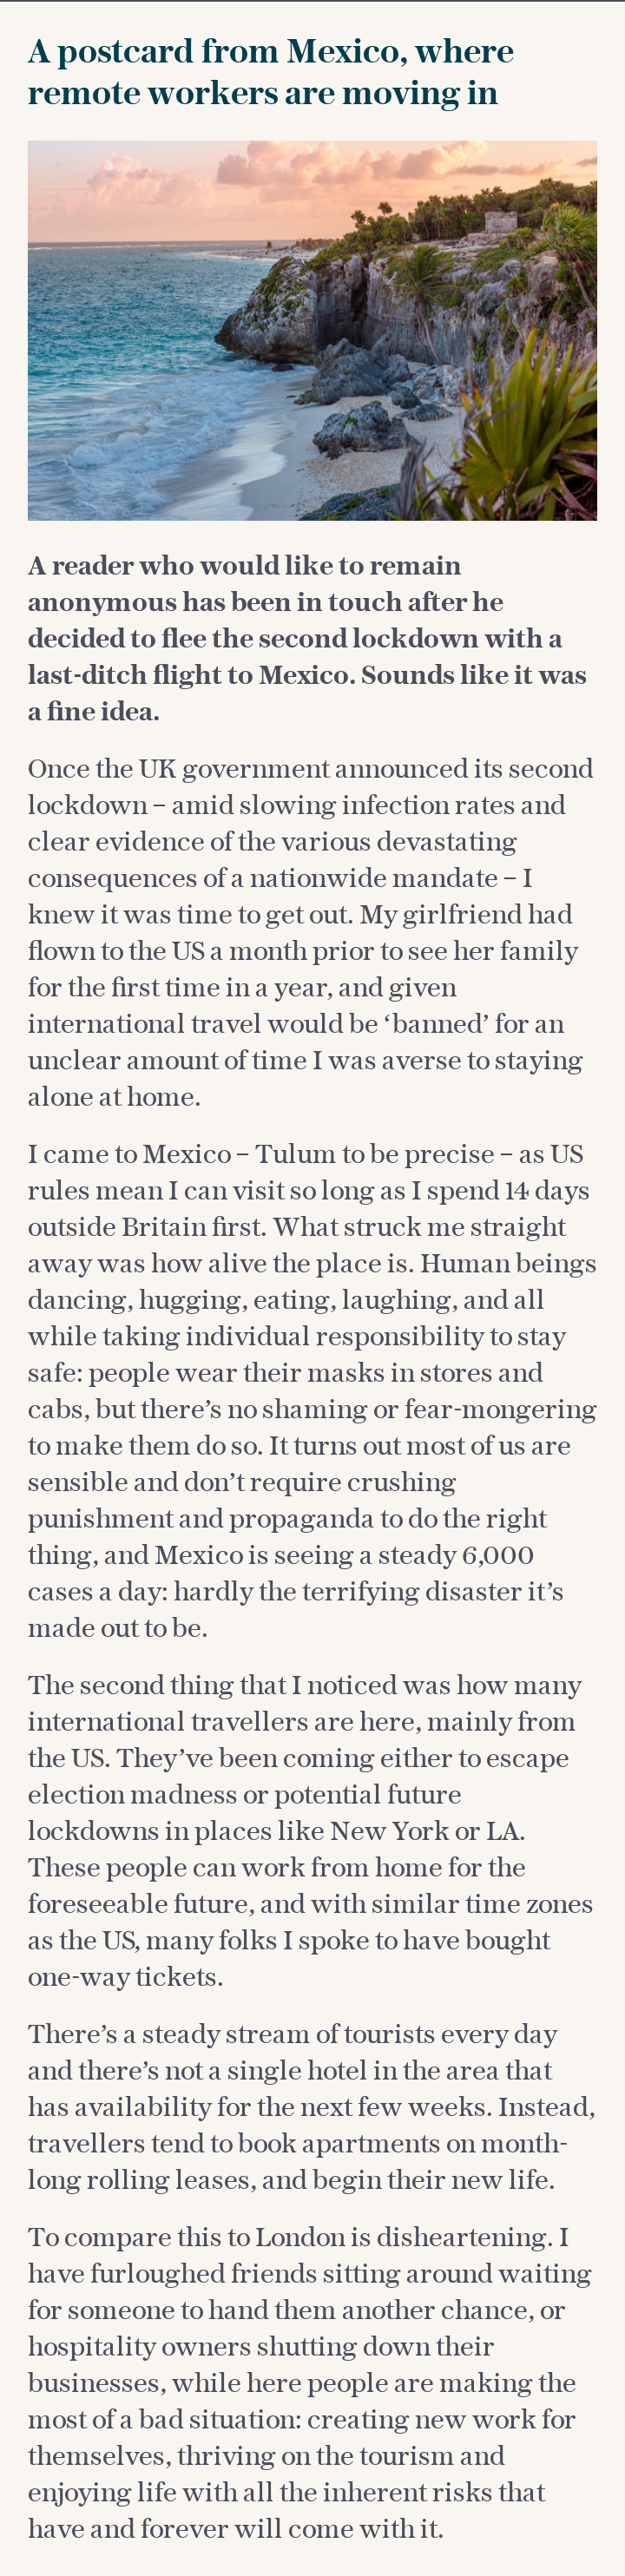 A postcard from Mexico, where remote workers are moving in